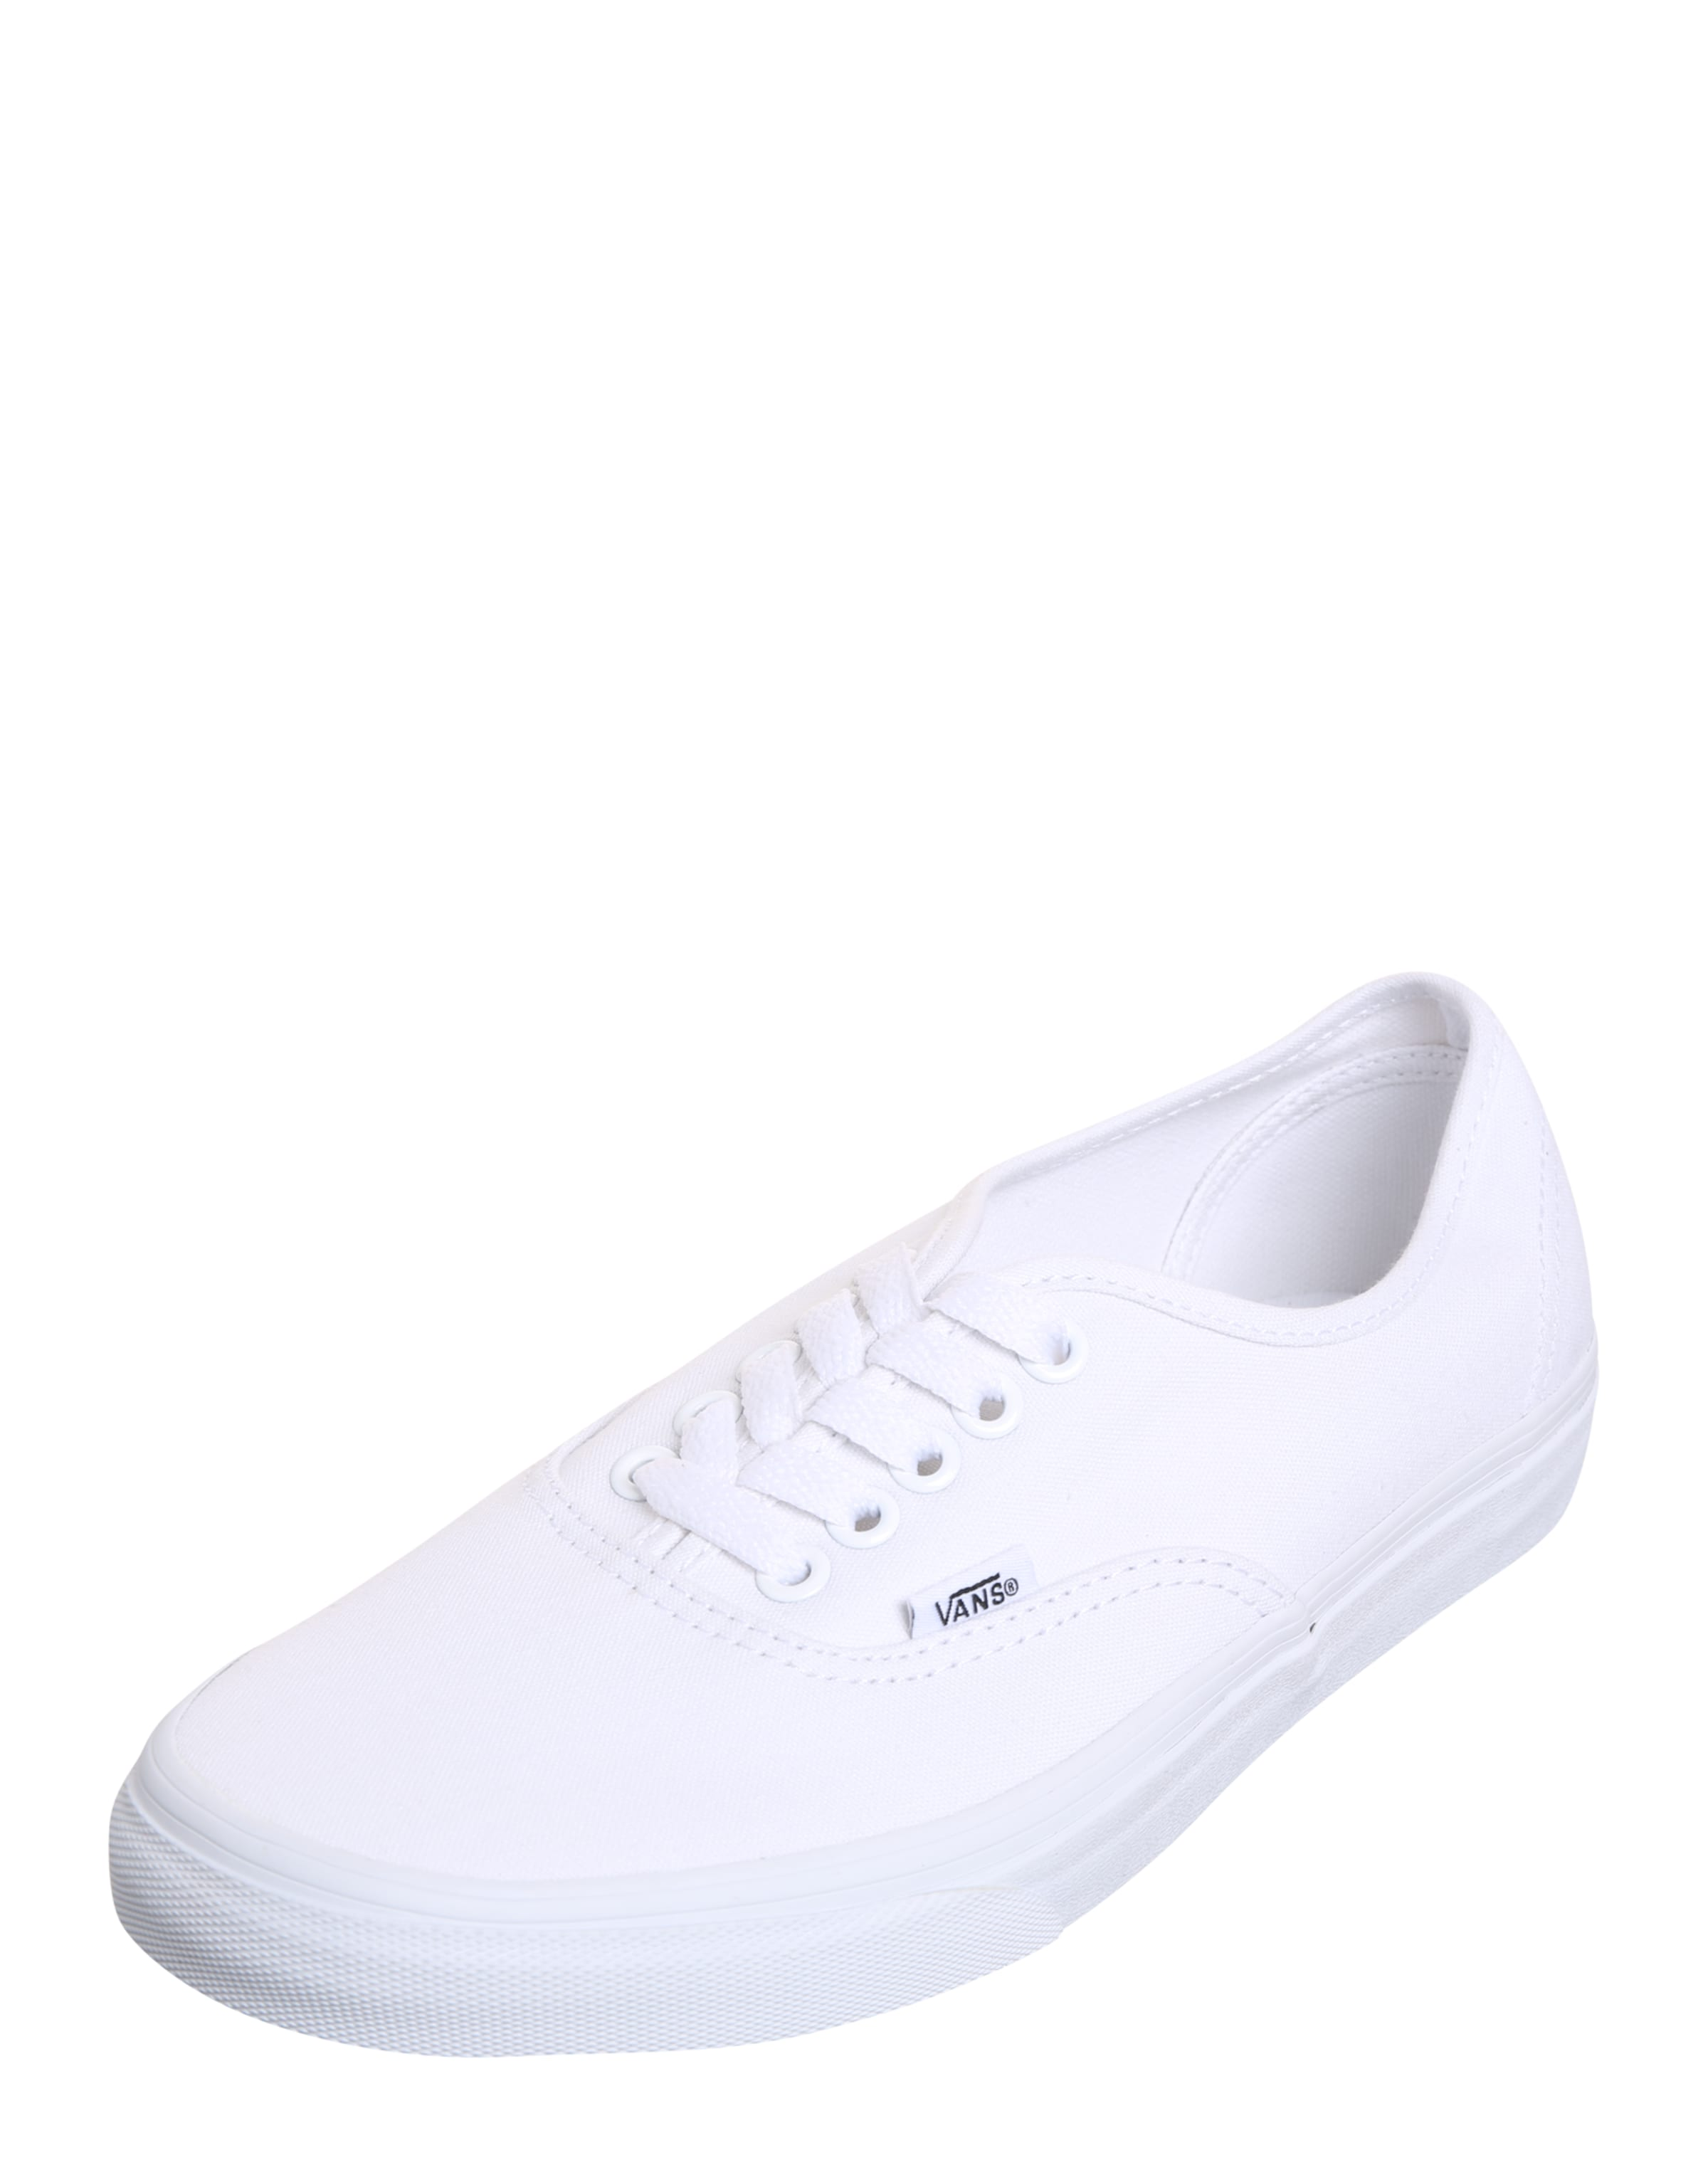 457abcc284 In Sneakers Vans 'authentic' In 'authentic' Sneakers Sneakers Weiß Weiß Vans  'authentic' Vans In bf7g6y